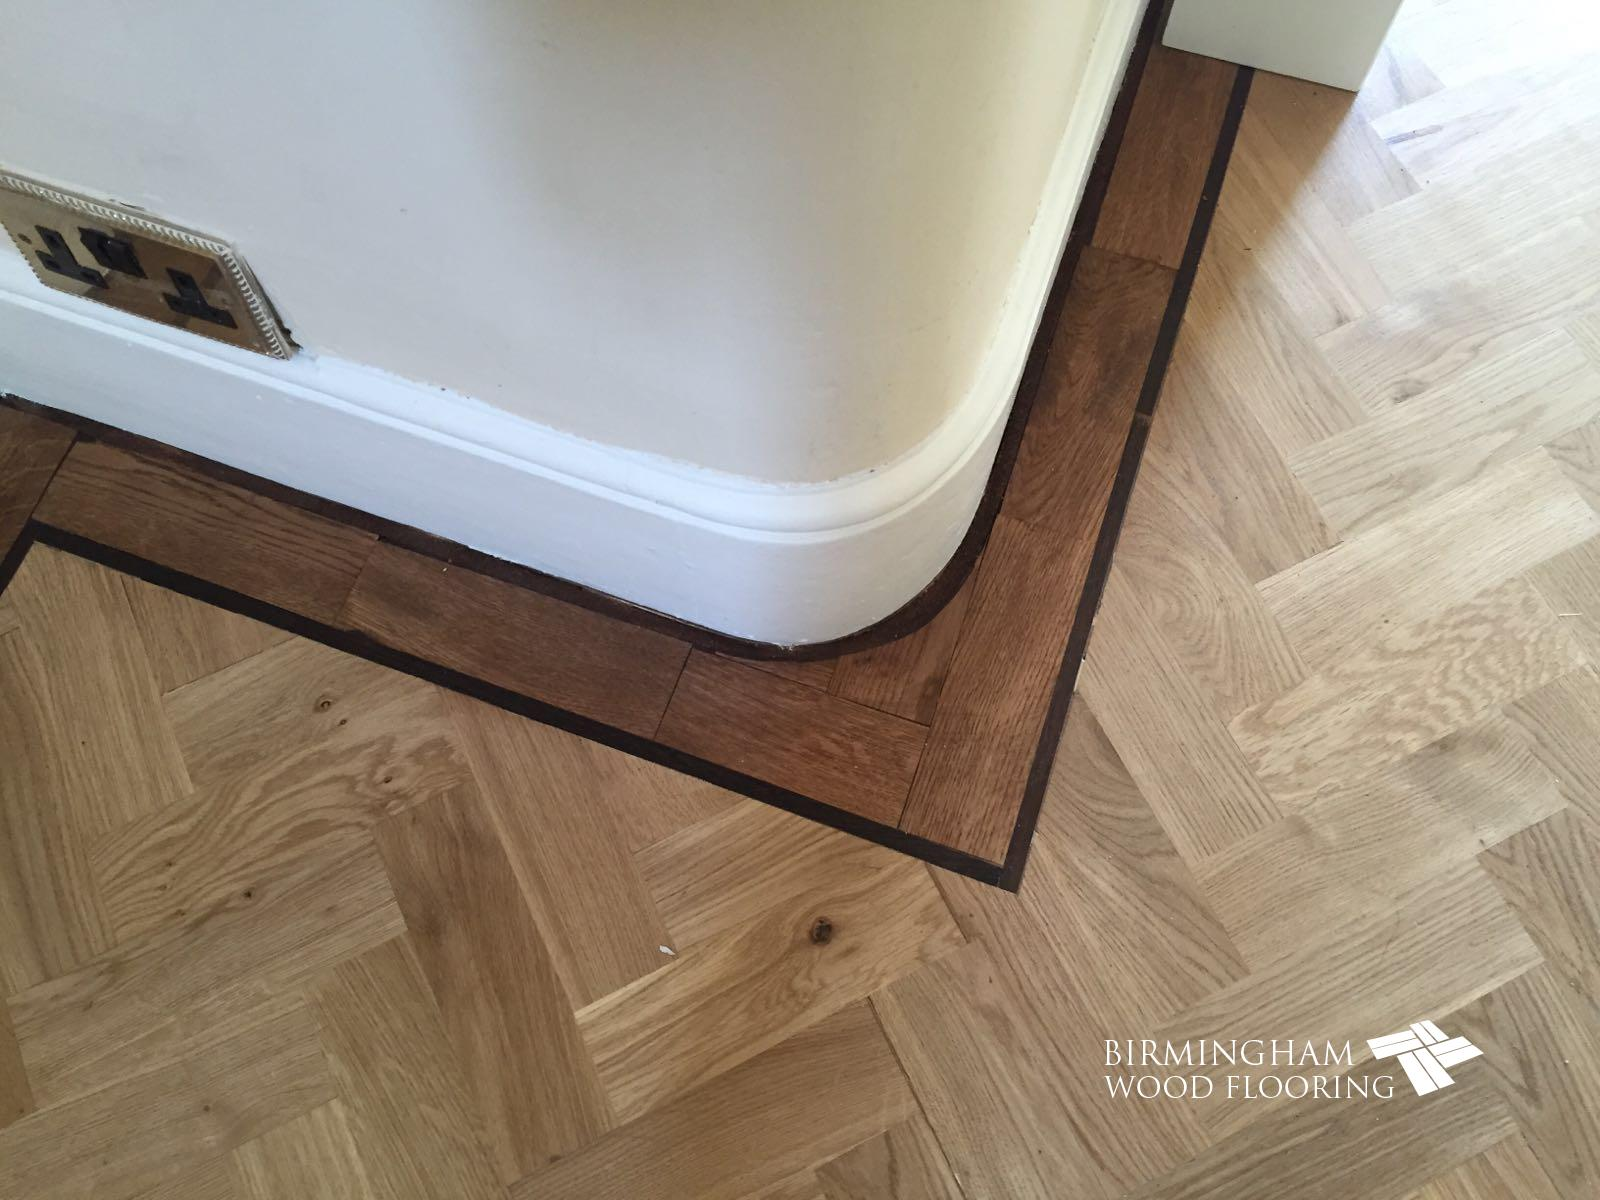 Parquet-floor-with-Wenge-Feature-strip-installed-with-order-stained-medium-oak-3